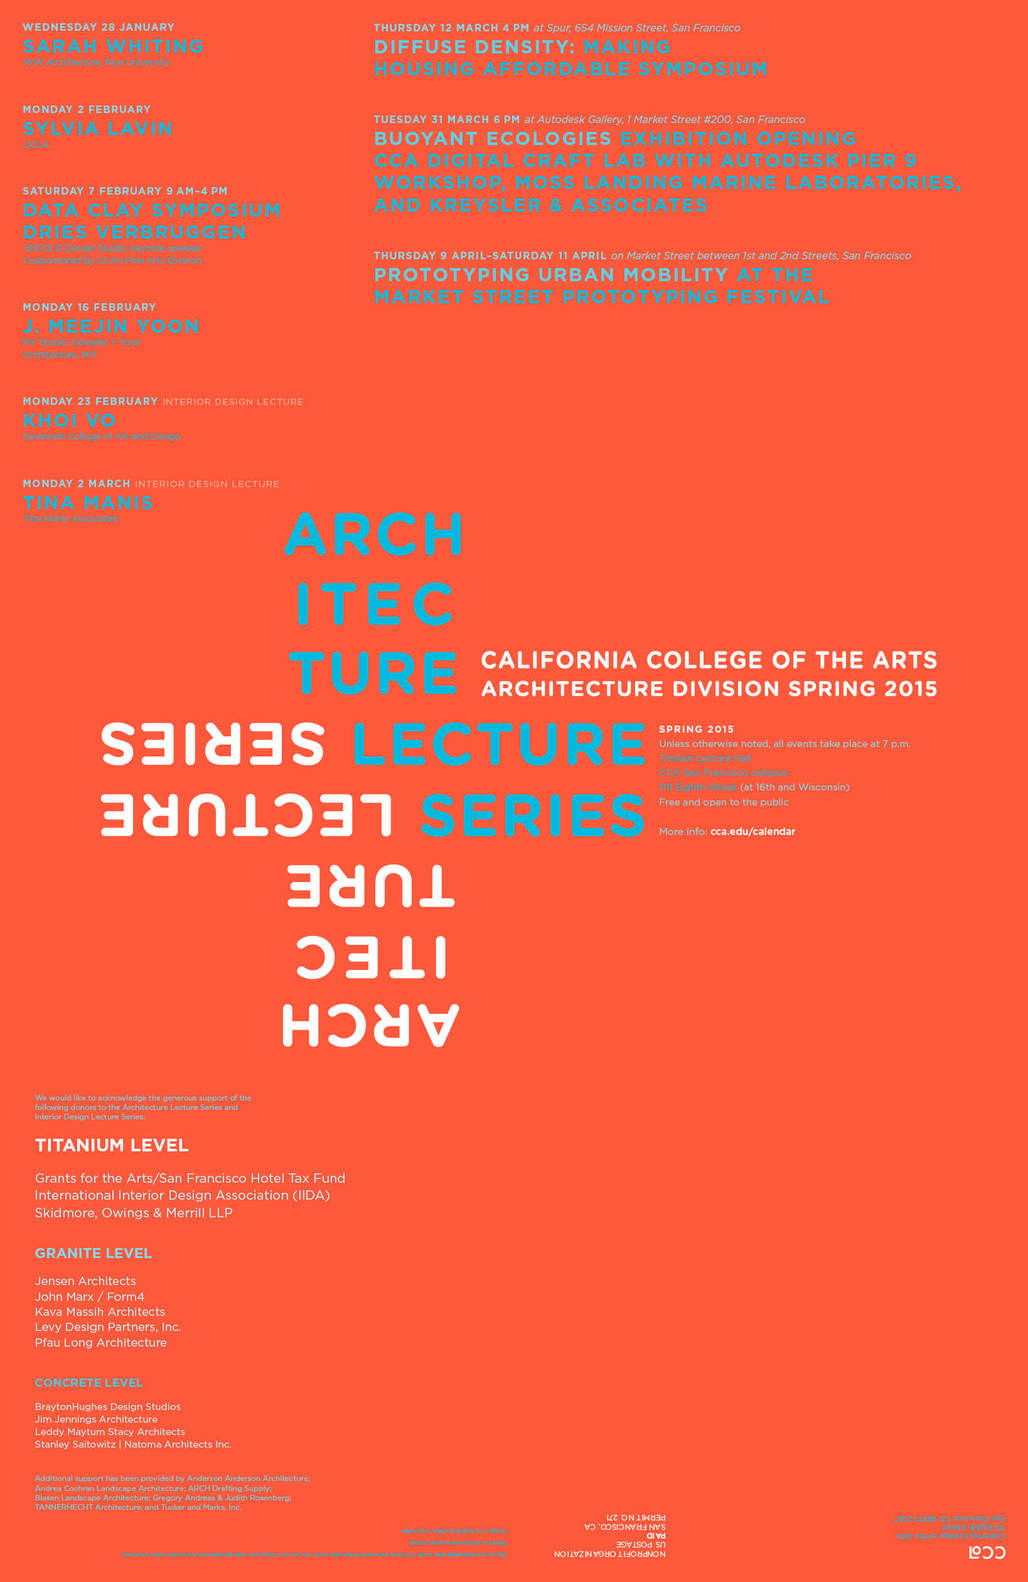 Spring 15 lectures + events for California College of the Arts Architecture and Interior Architecture. Image courtesy of California College of the Arts